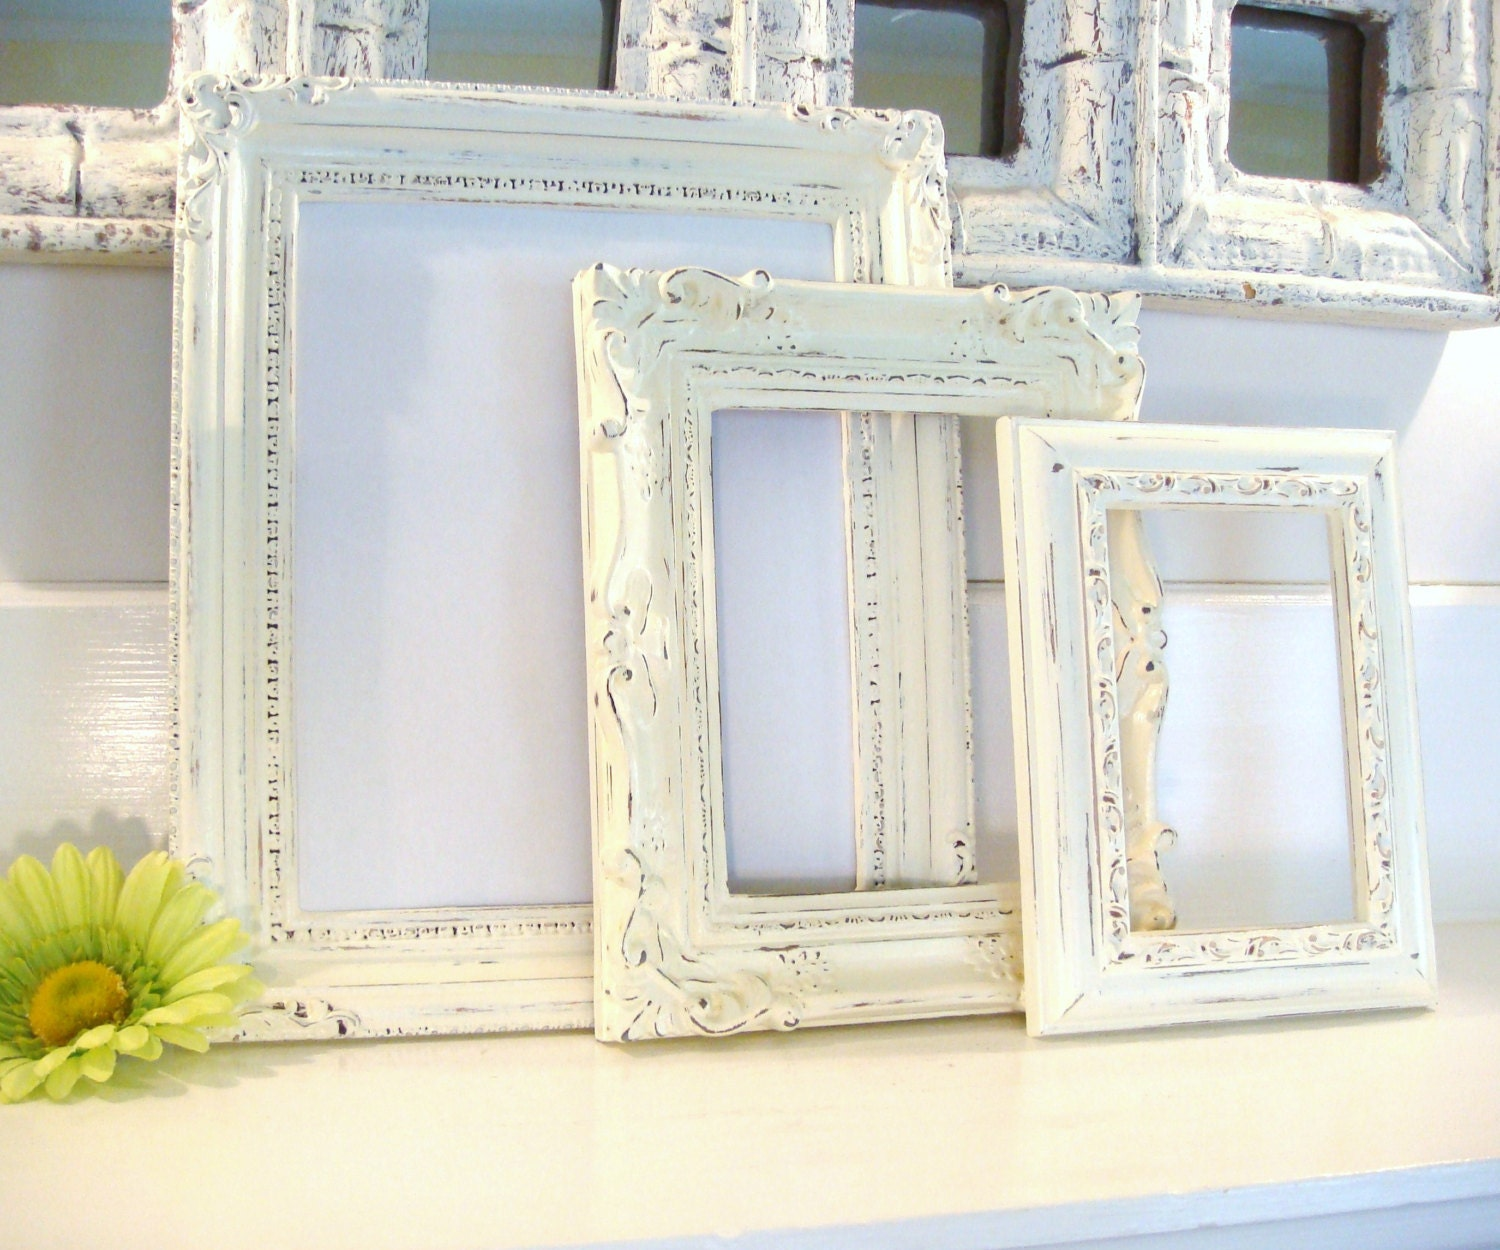 Amazoncom  Pinnacle Frames and Accents 8X10 Distressed